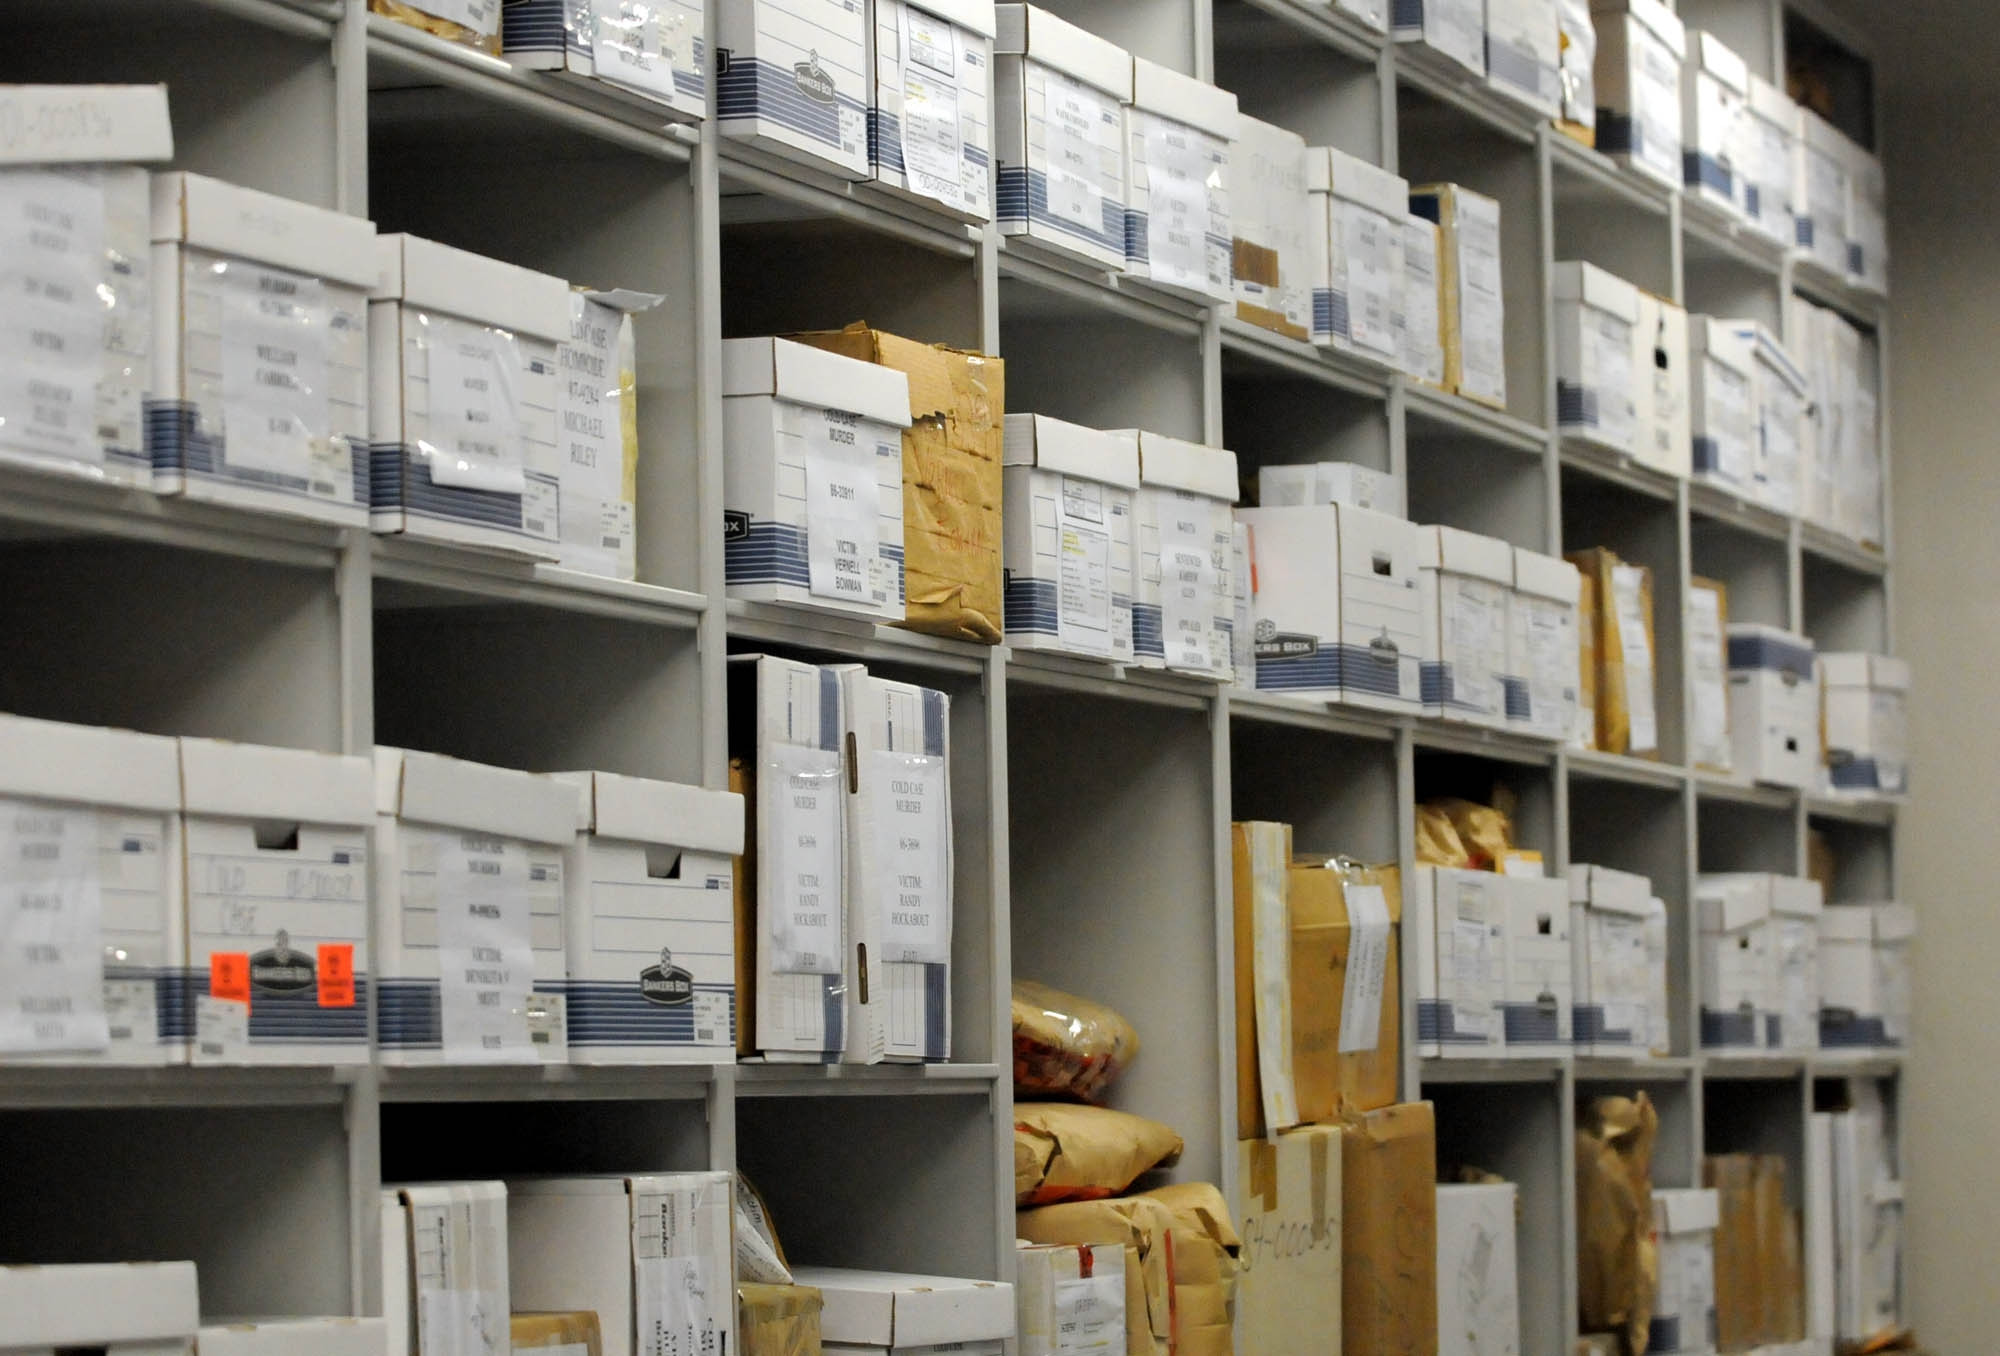 property and evidence boxes and files